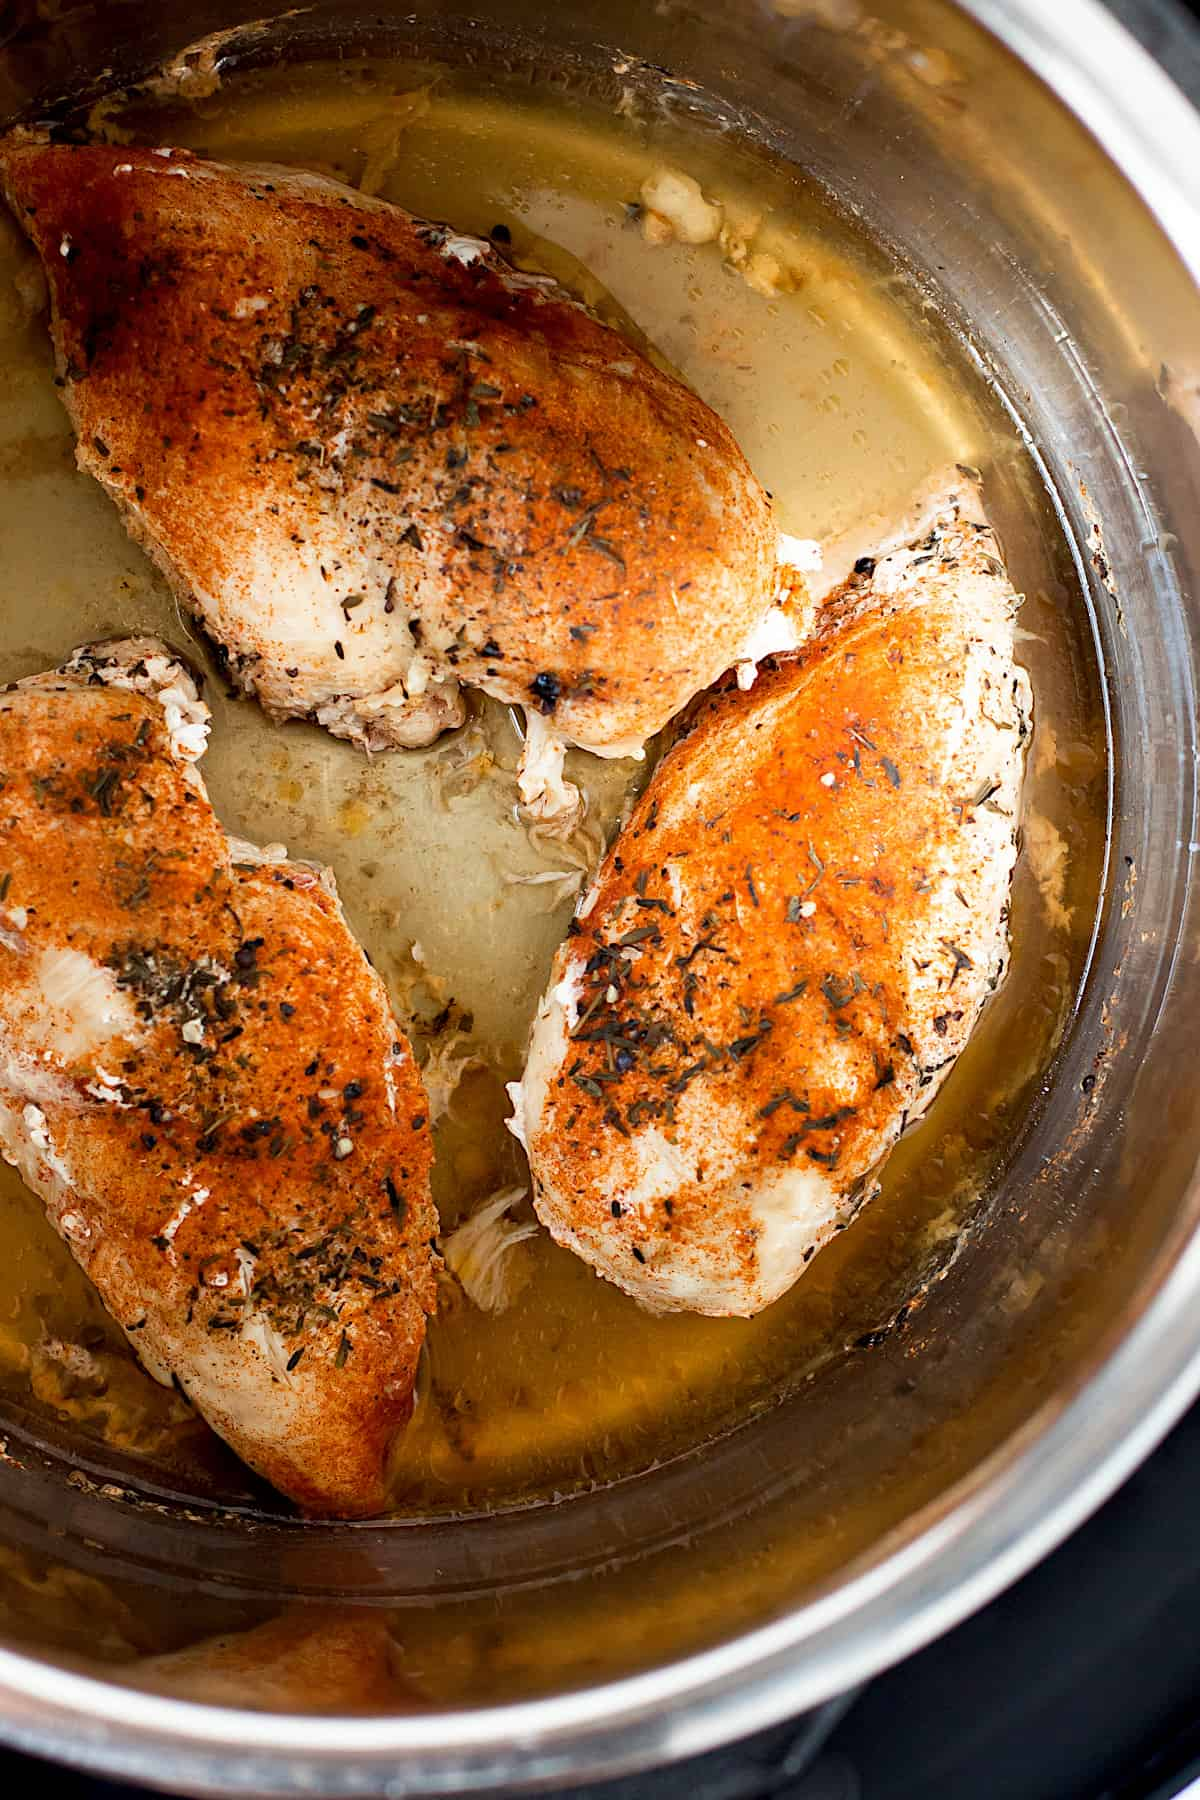 Fully cooked chicken breasts in the Instant Pot.